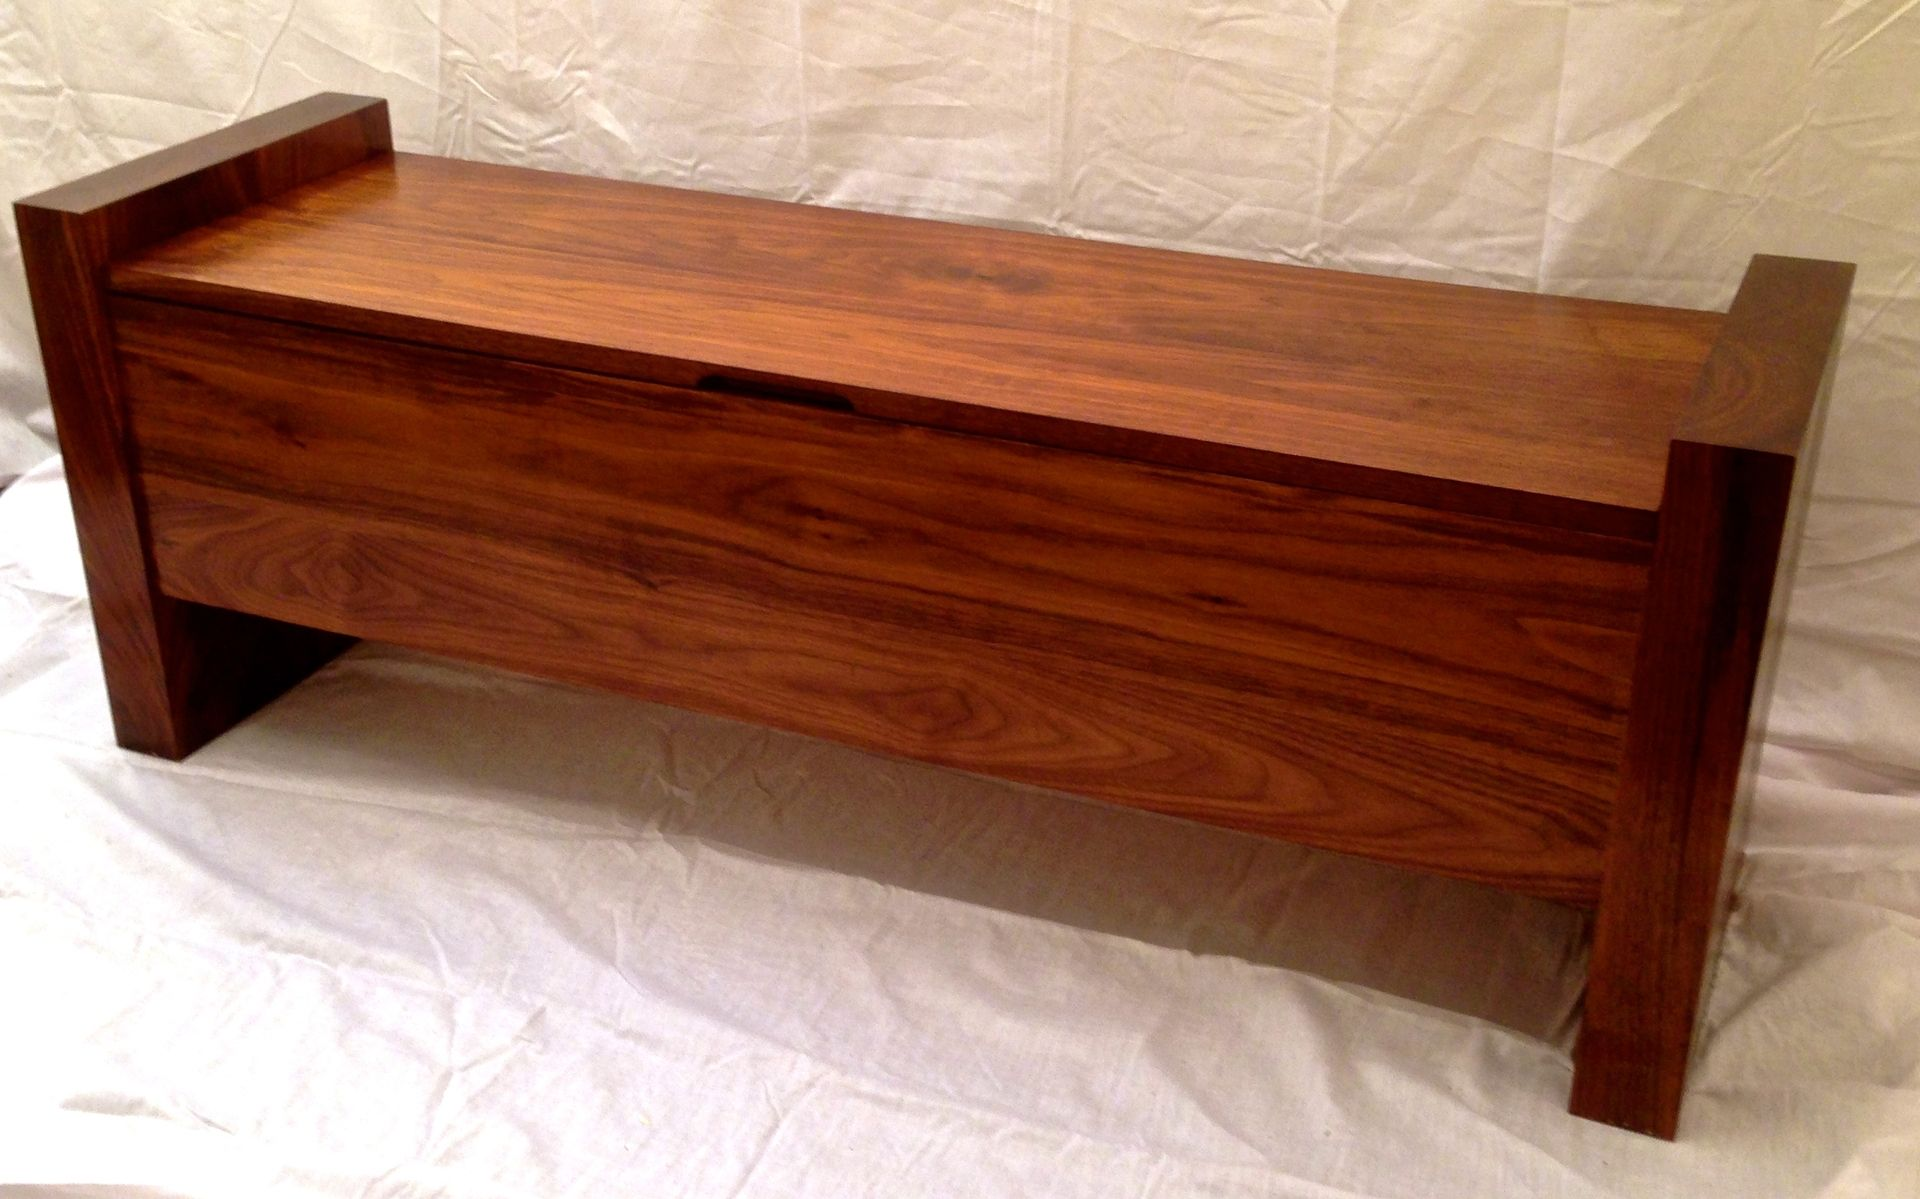 Handmade Walnut Storage Bench By Shawn S Woodworking